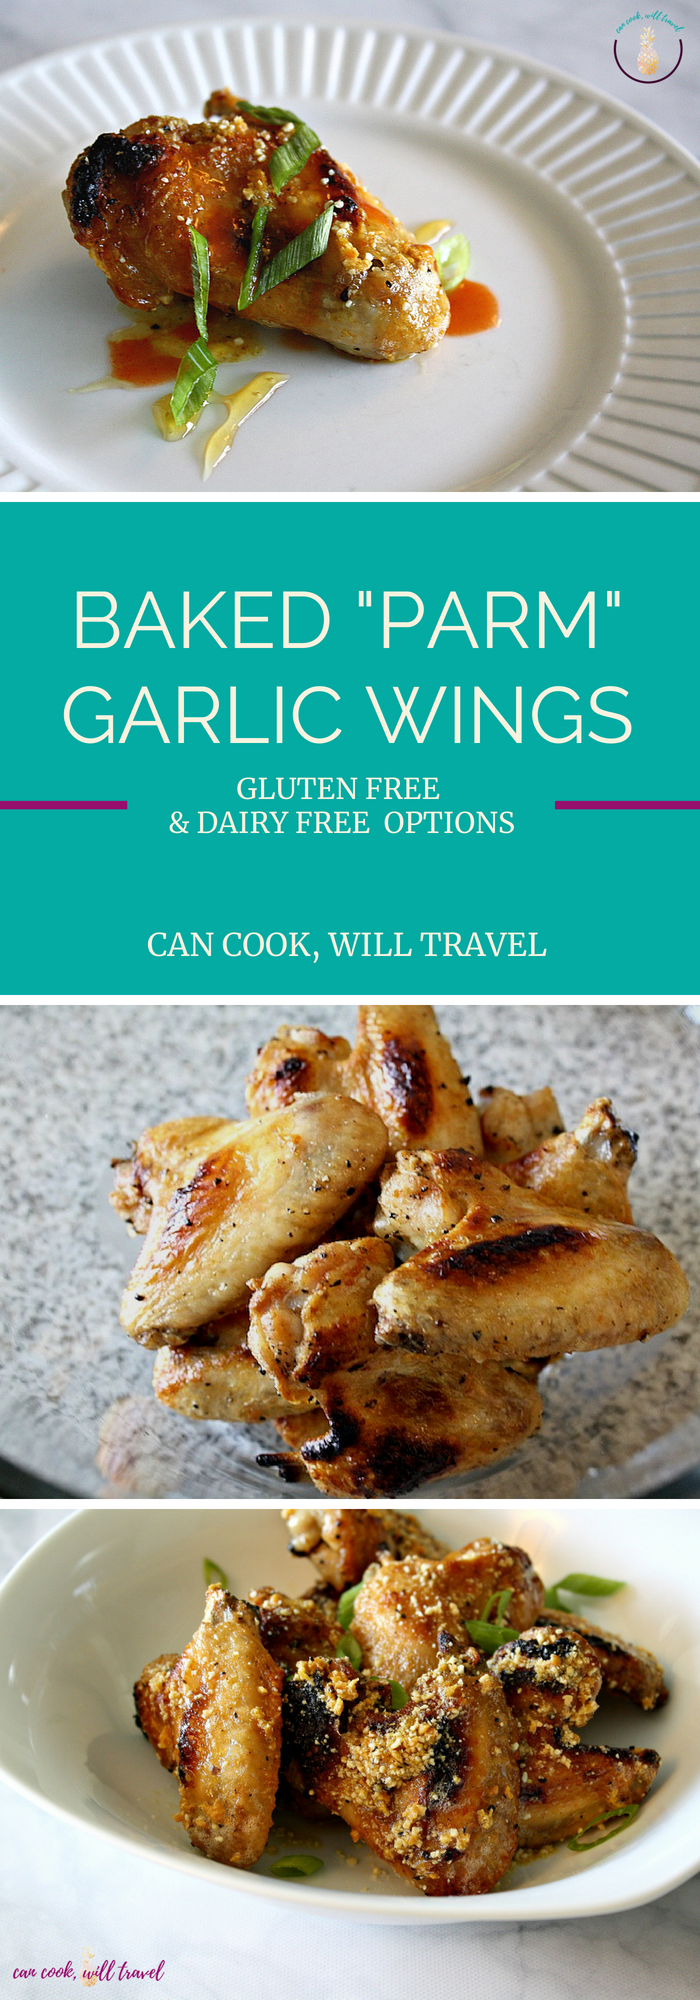 Garlic Parm Wings_Collage2